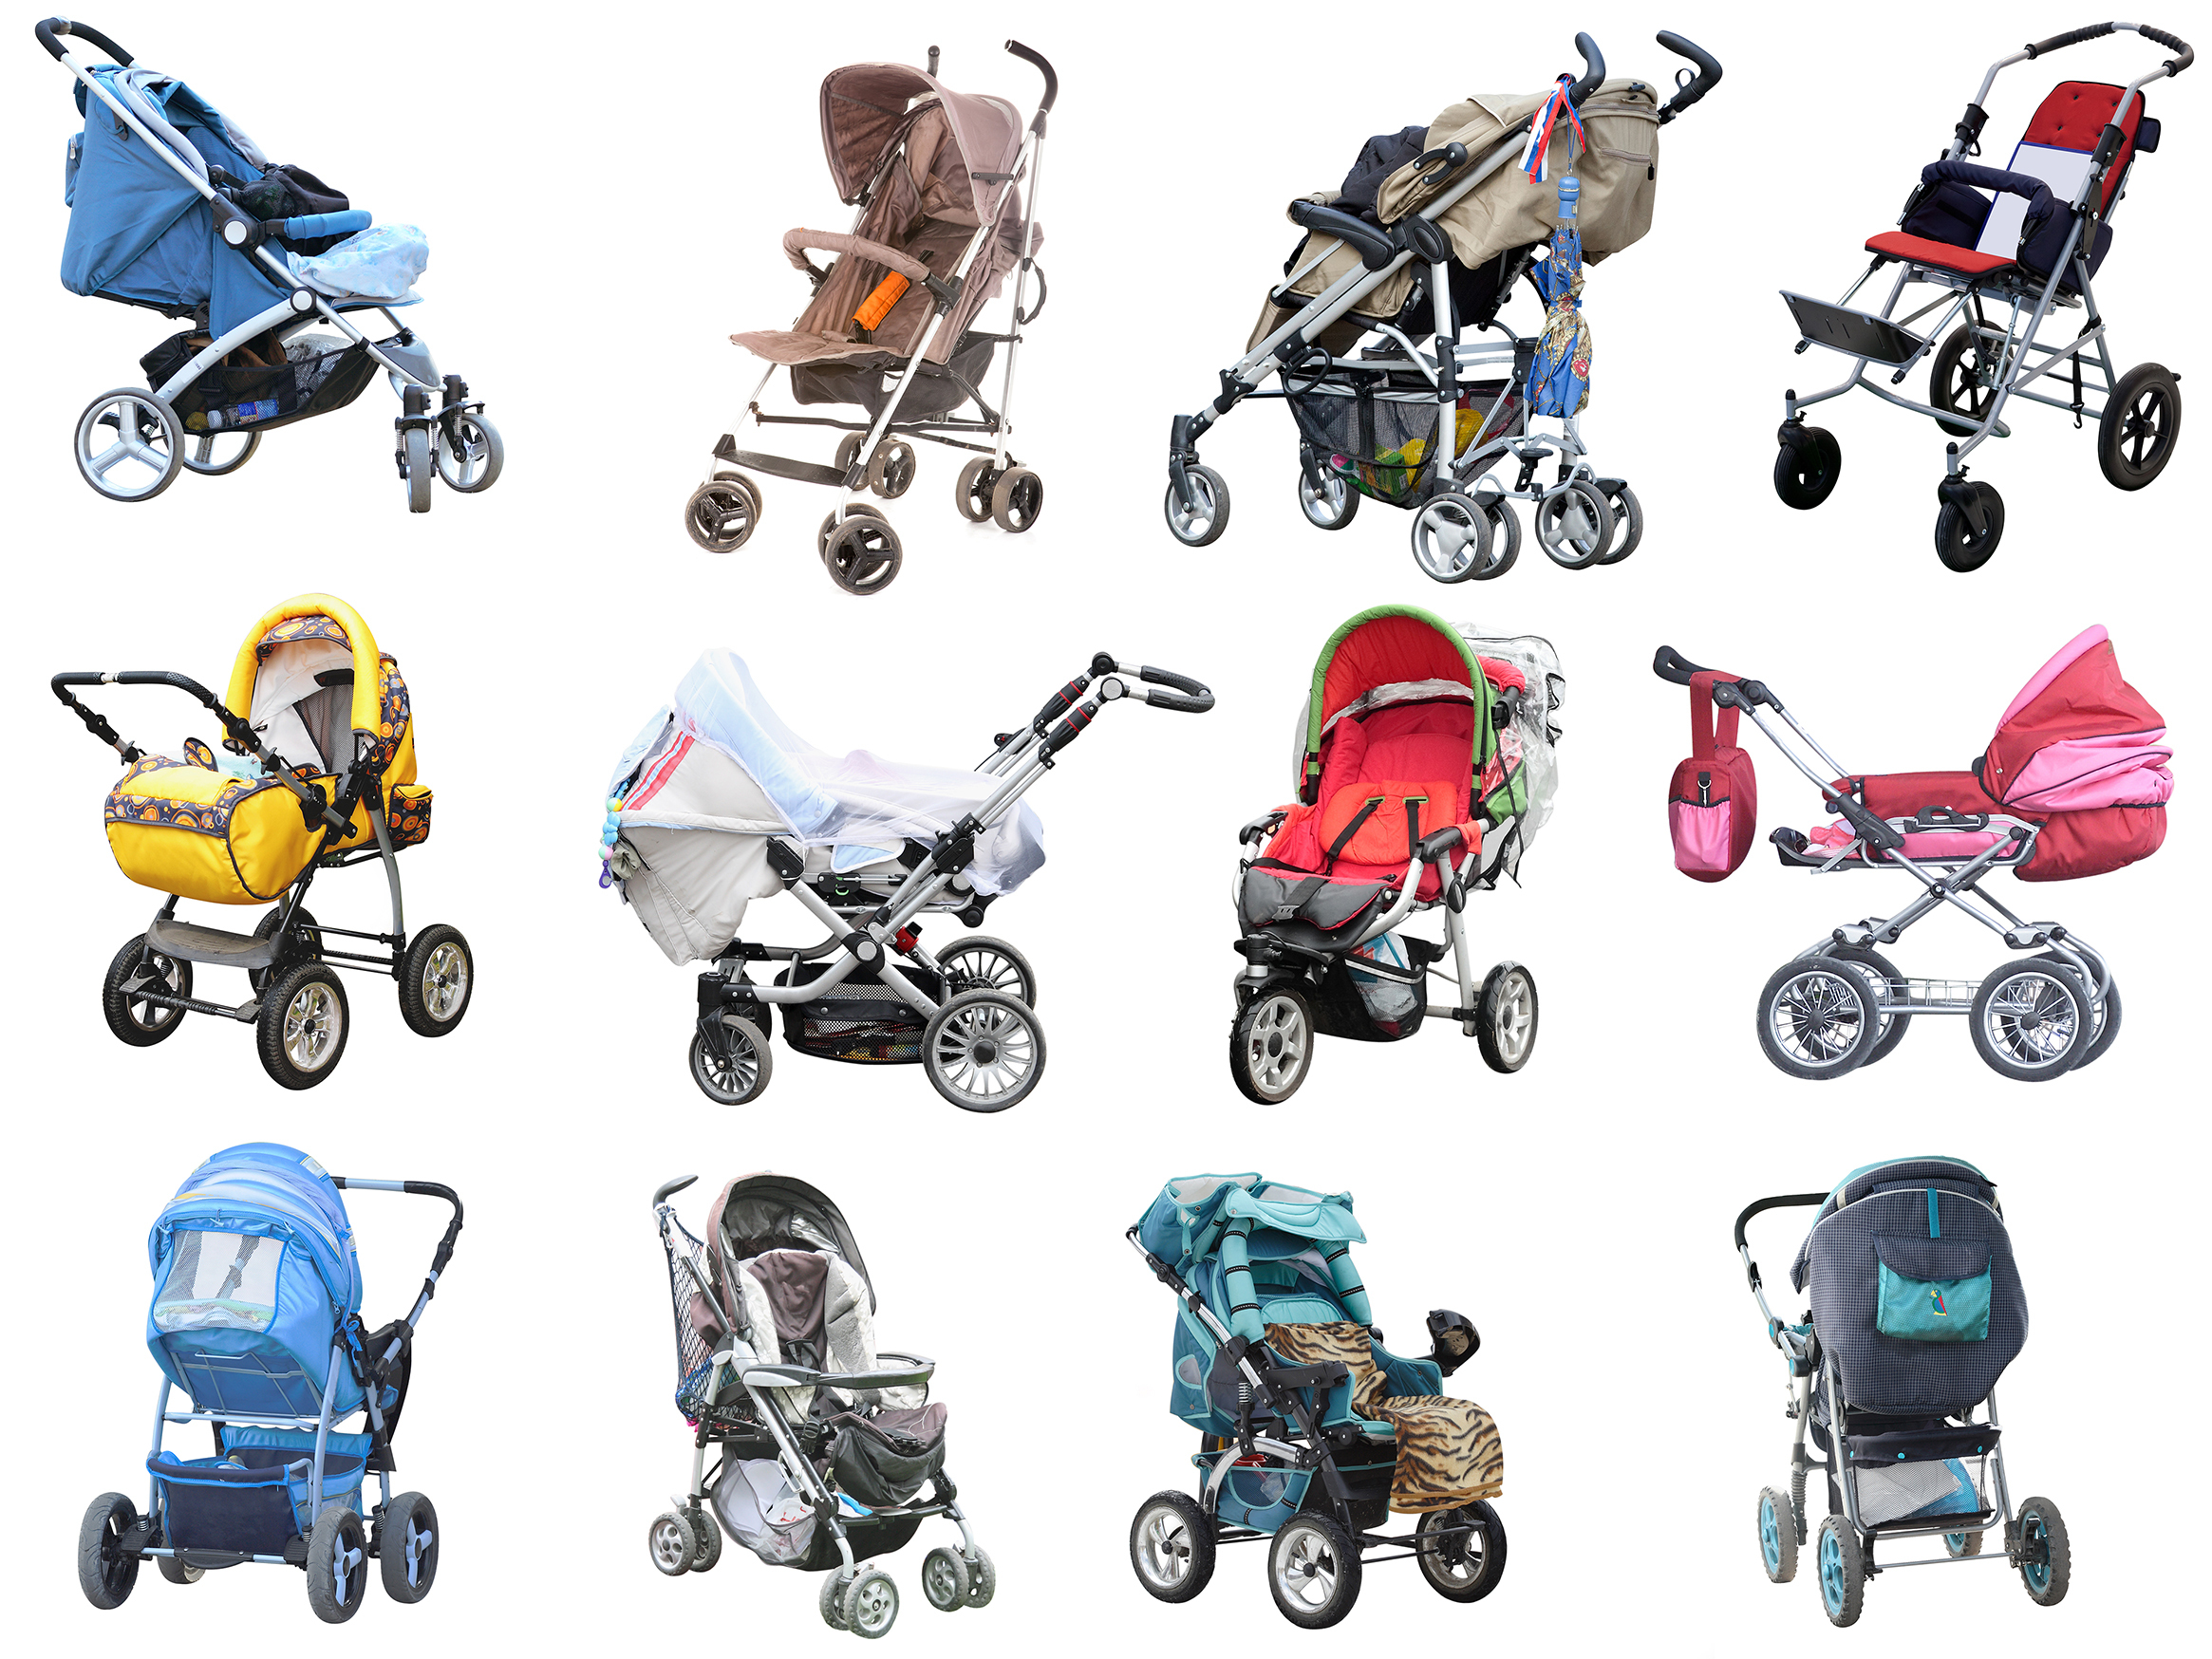 Fits Any Type of Stroller or Wheelchair! - A one-size fits all solution. We understand how important it to take care of your children and loved ones. Now its time we think about you and your comfort!